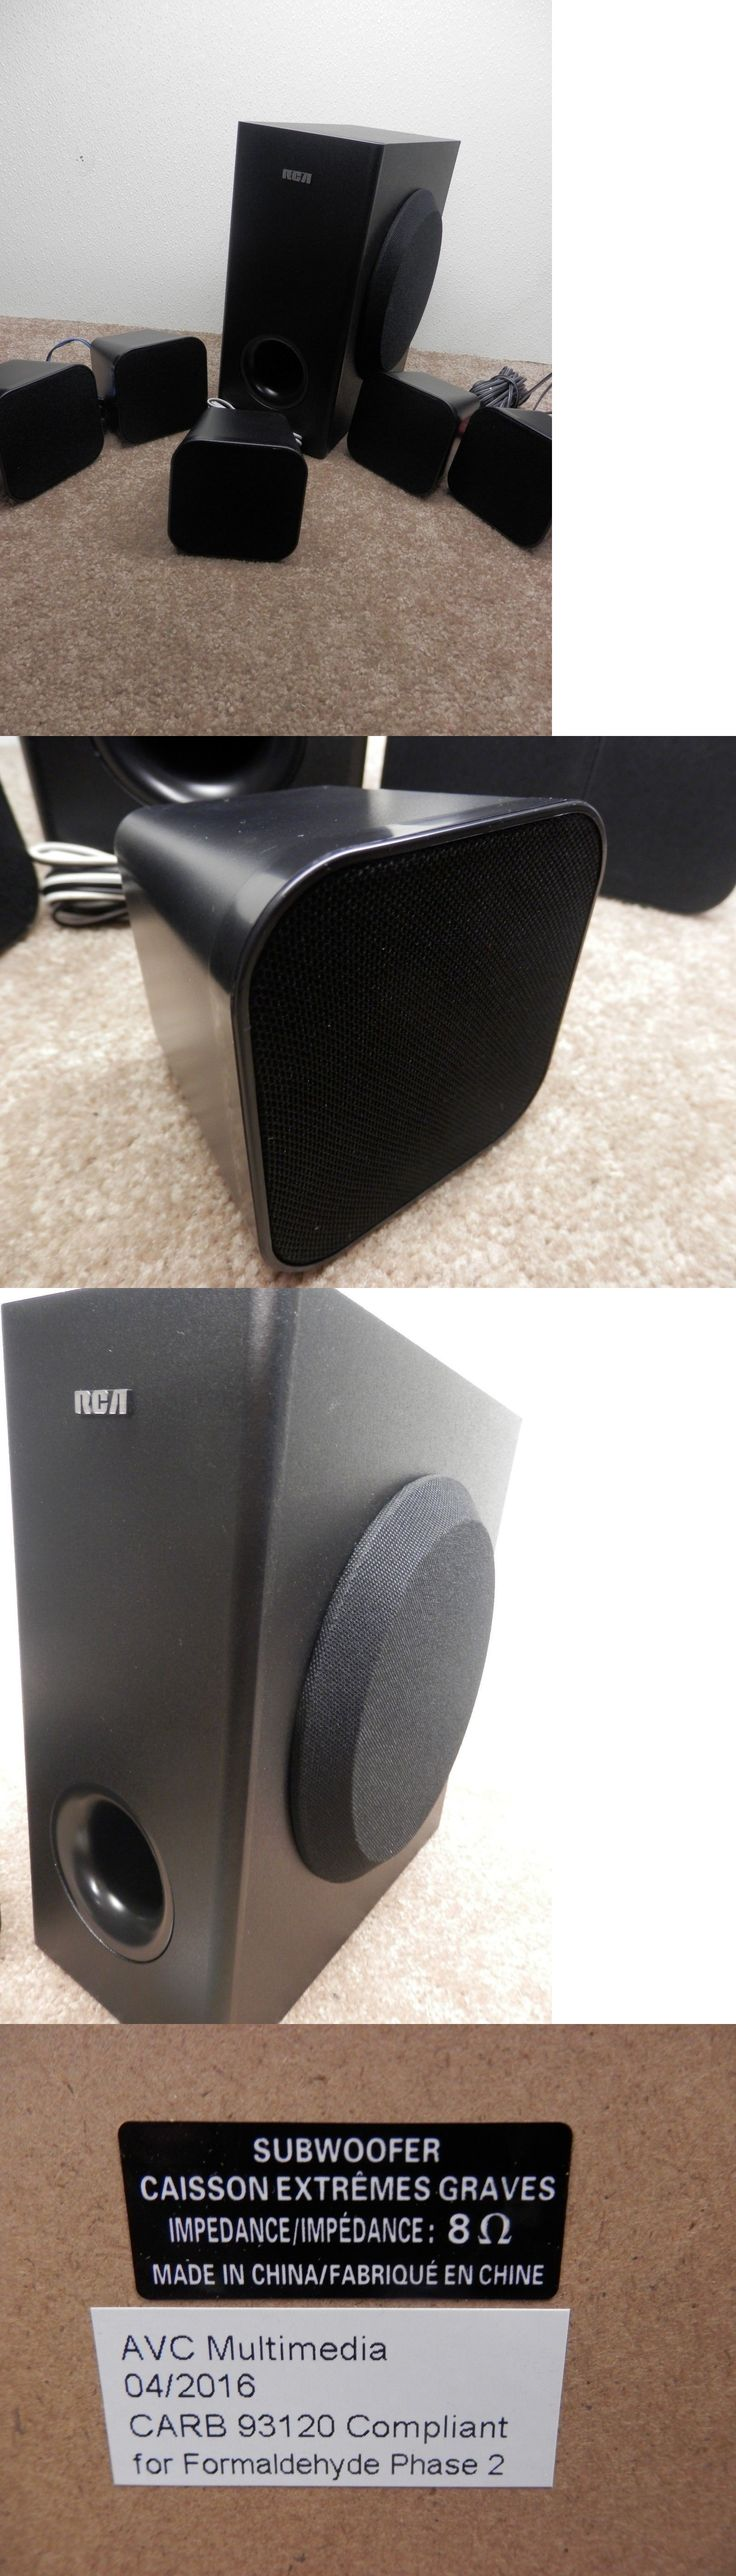 Home Theater Systems: Rca 5.1 200 Watt Replacement Subwoofer And 5 Speakers Model#Rtd3276h -> BUY IT NOW ONLY: $34.25 on eBay!